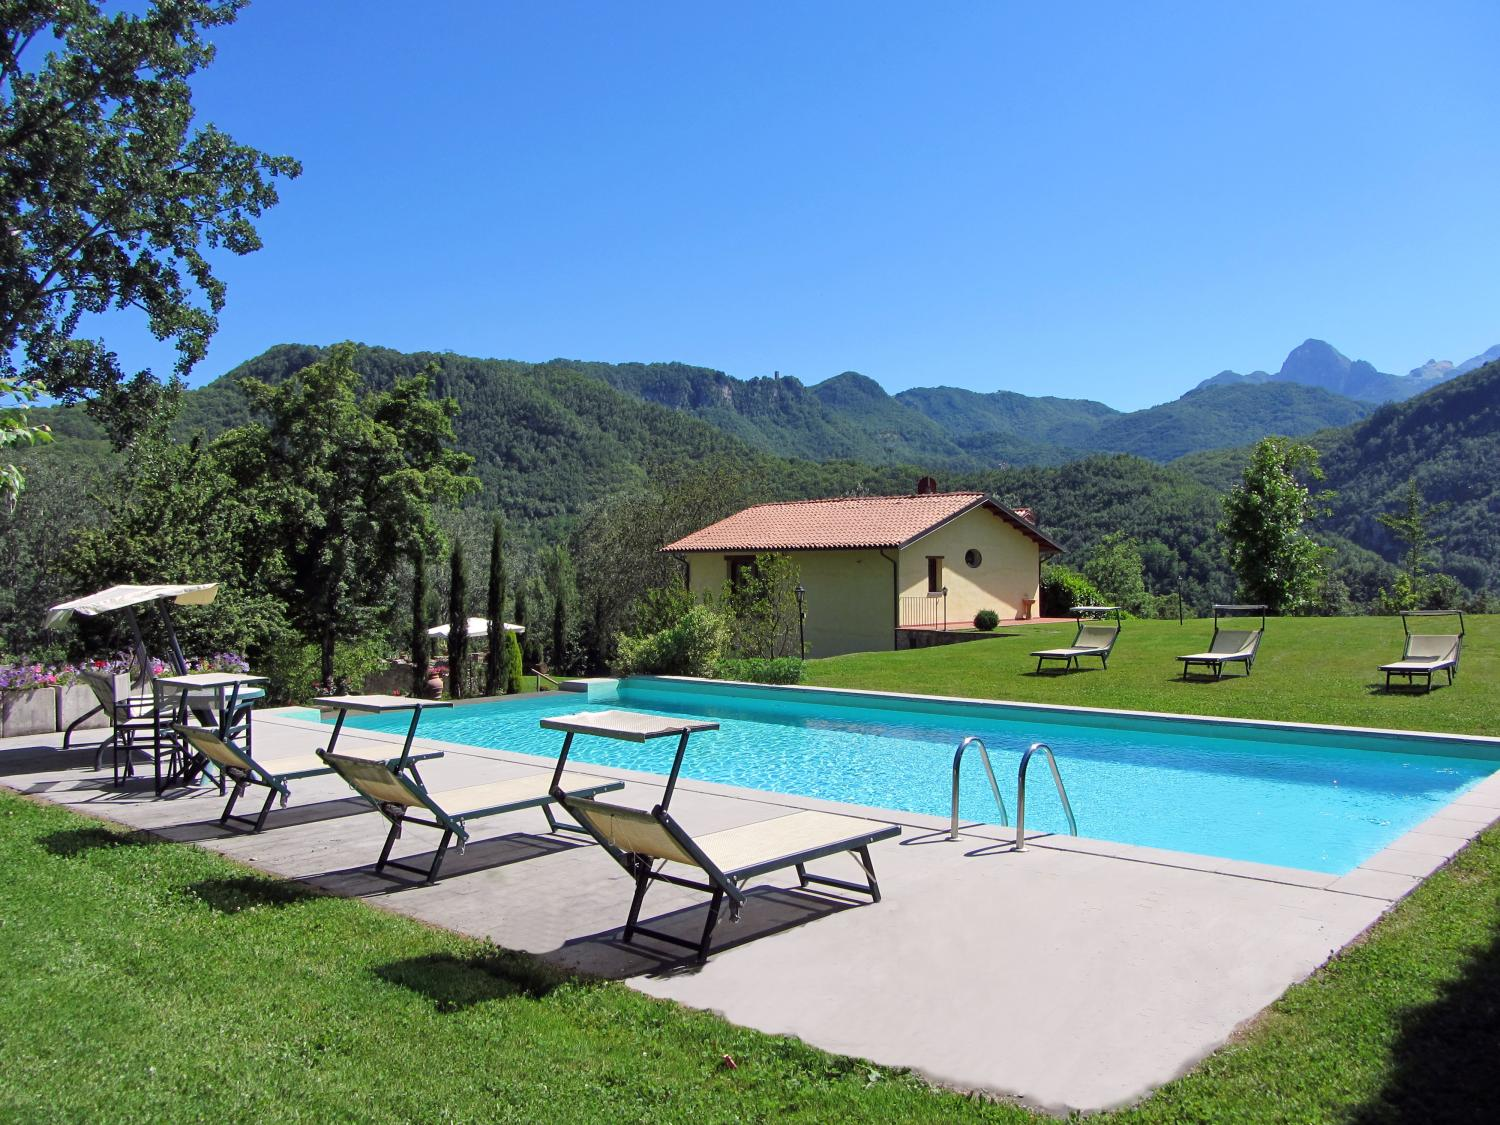 Outdoor pool, Castagnaccio, Tuscany, Barga.